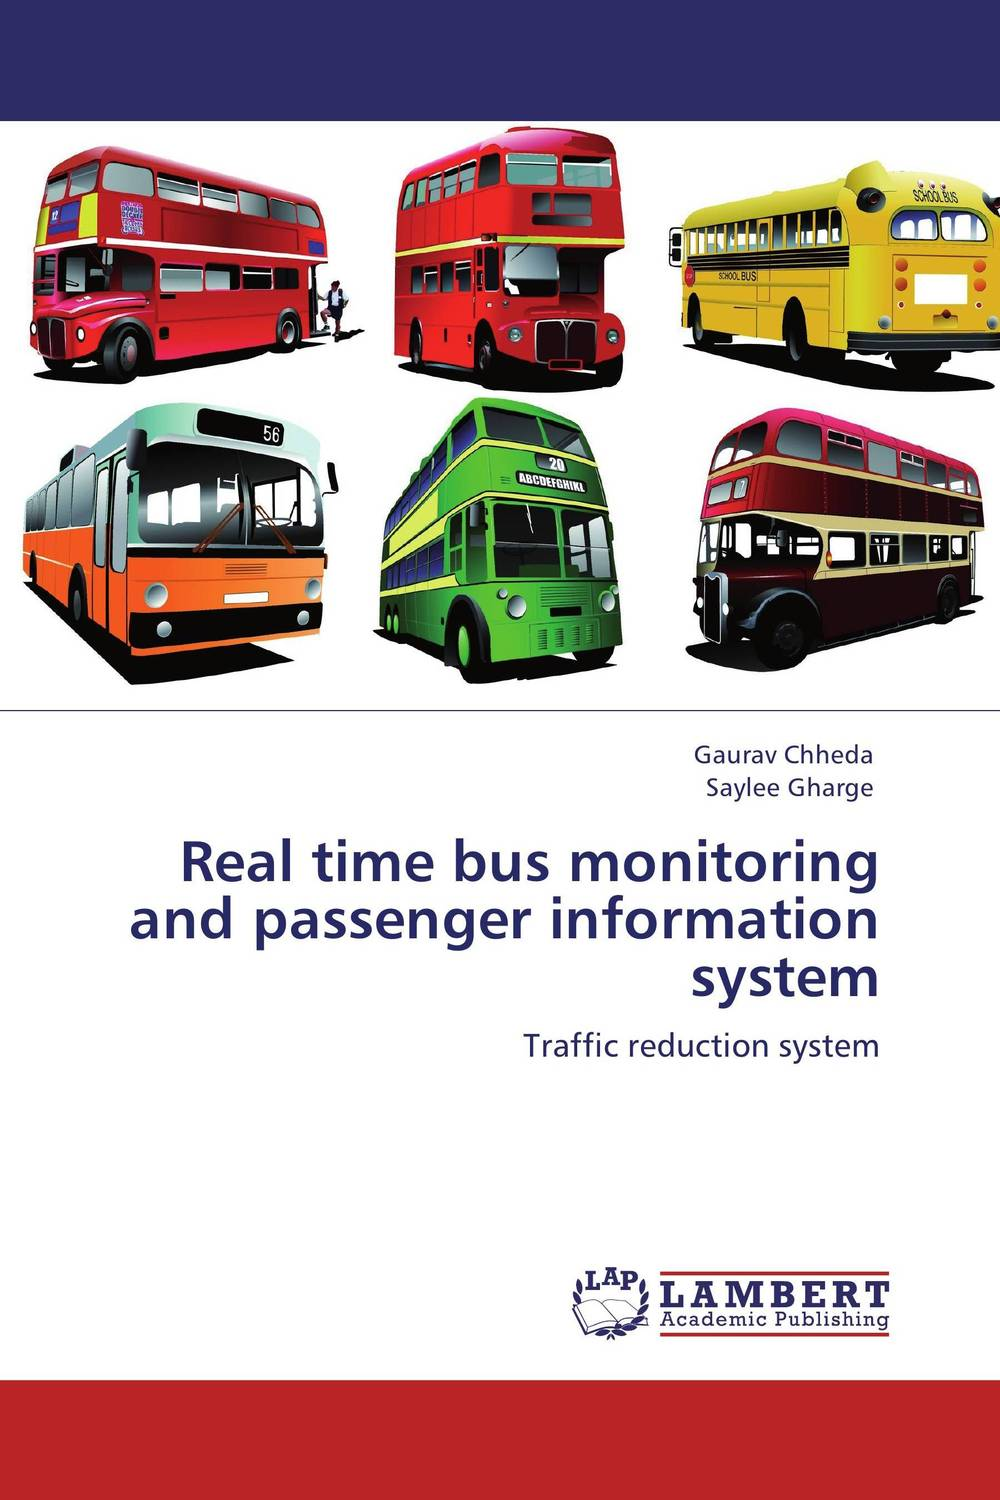 Real time bus monitoring and passenger information system design and verification of bus bridge from ocp to ahb